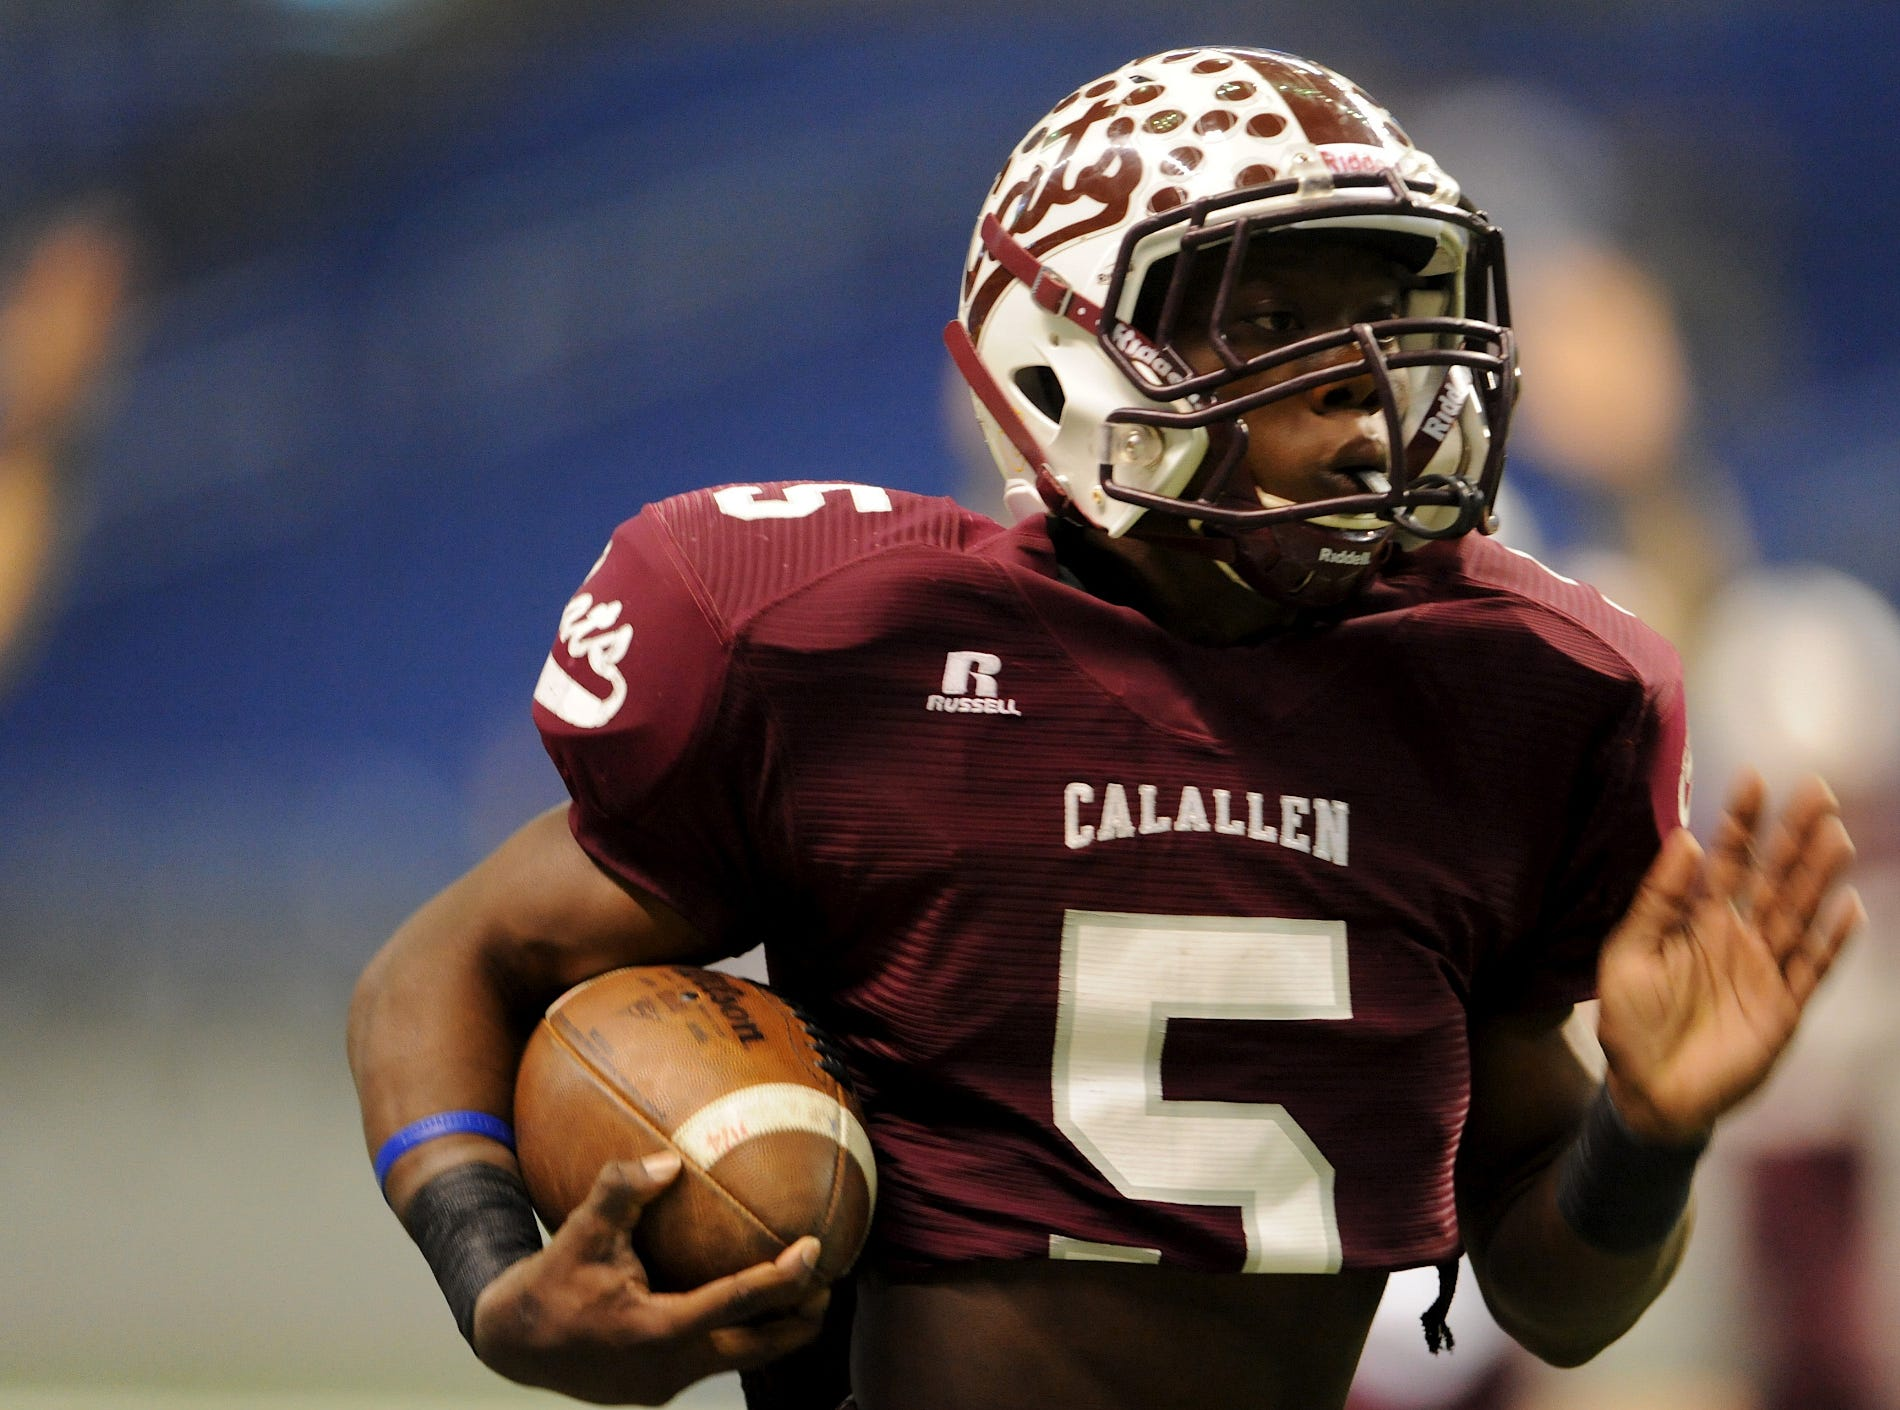 Calallen senior Marcus Price runs back his first of two kickoff returns for touchdowns during the Wildcats state semifinal football playoff game against Manvel.